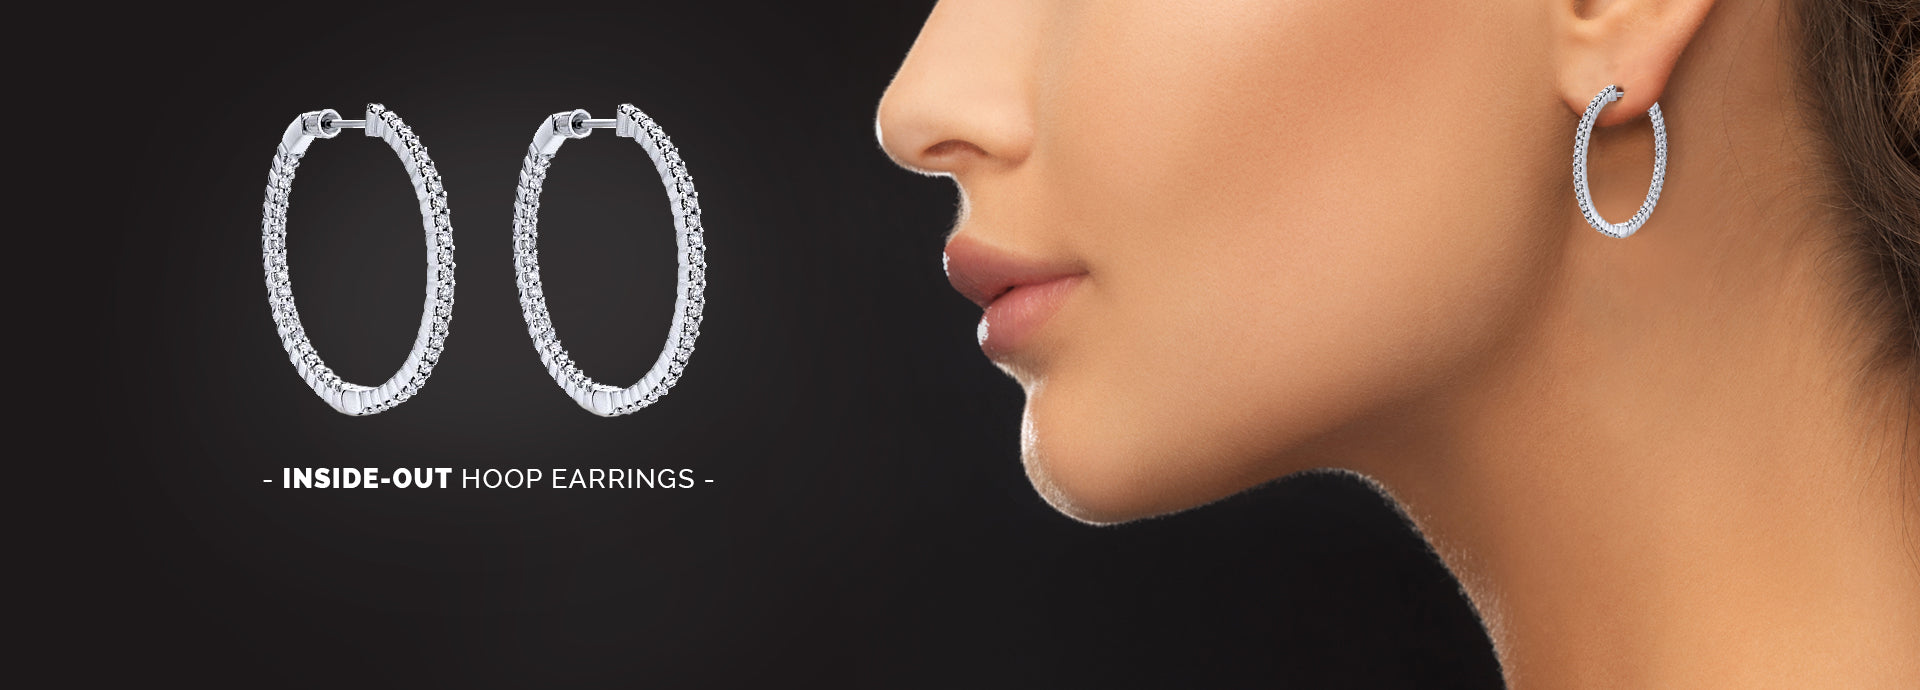 Harlings Jewellers - Inside-Out Hoop Earrings